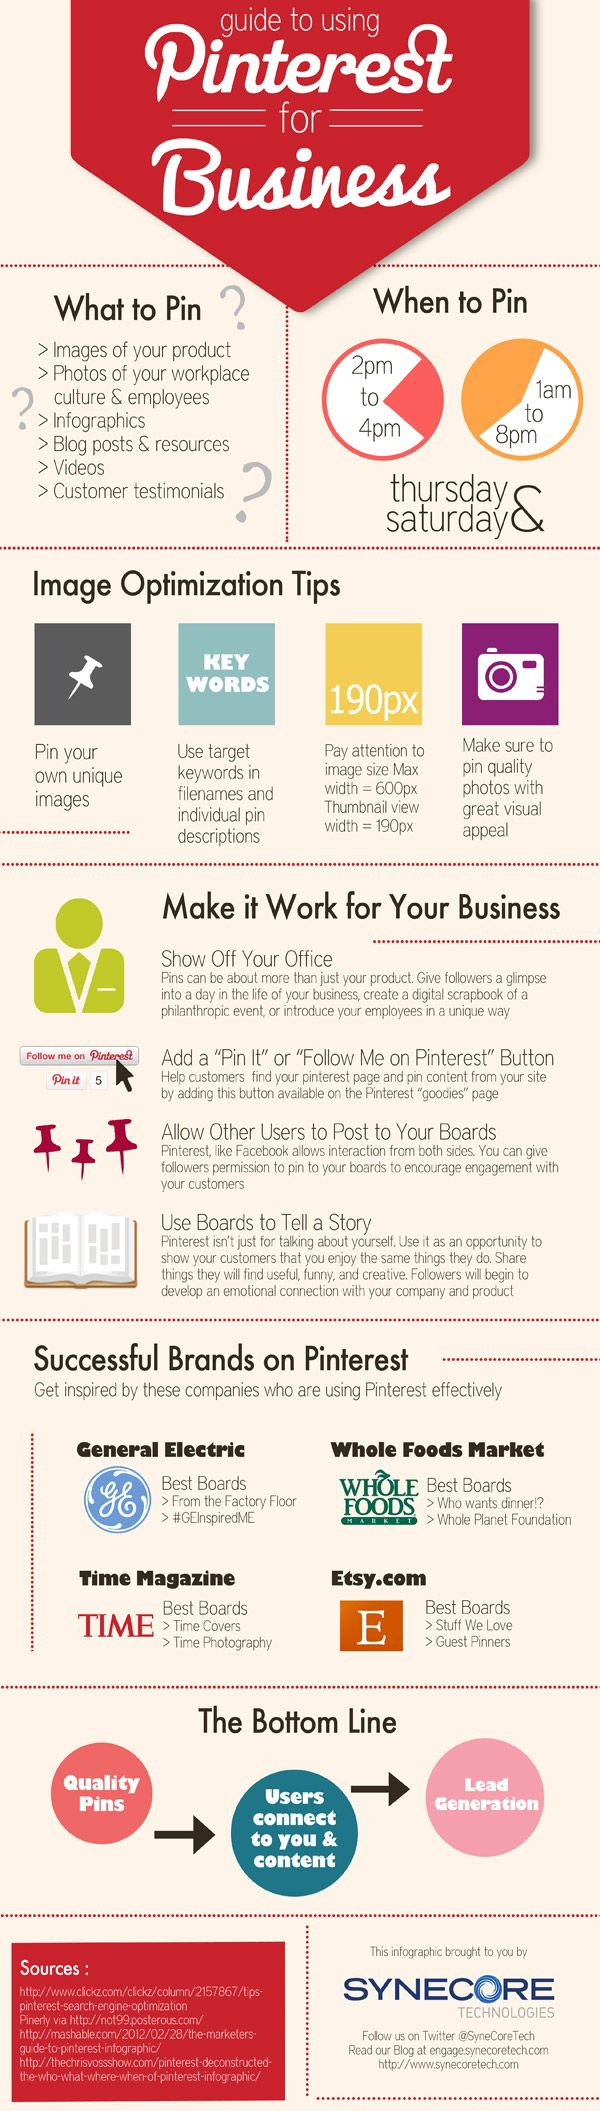 Pinterest For Business: Quick and easy tips on how to make Pinterest work for your business. #onlinebusinessopportunity #ecommerce #shopify